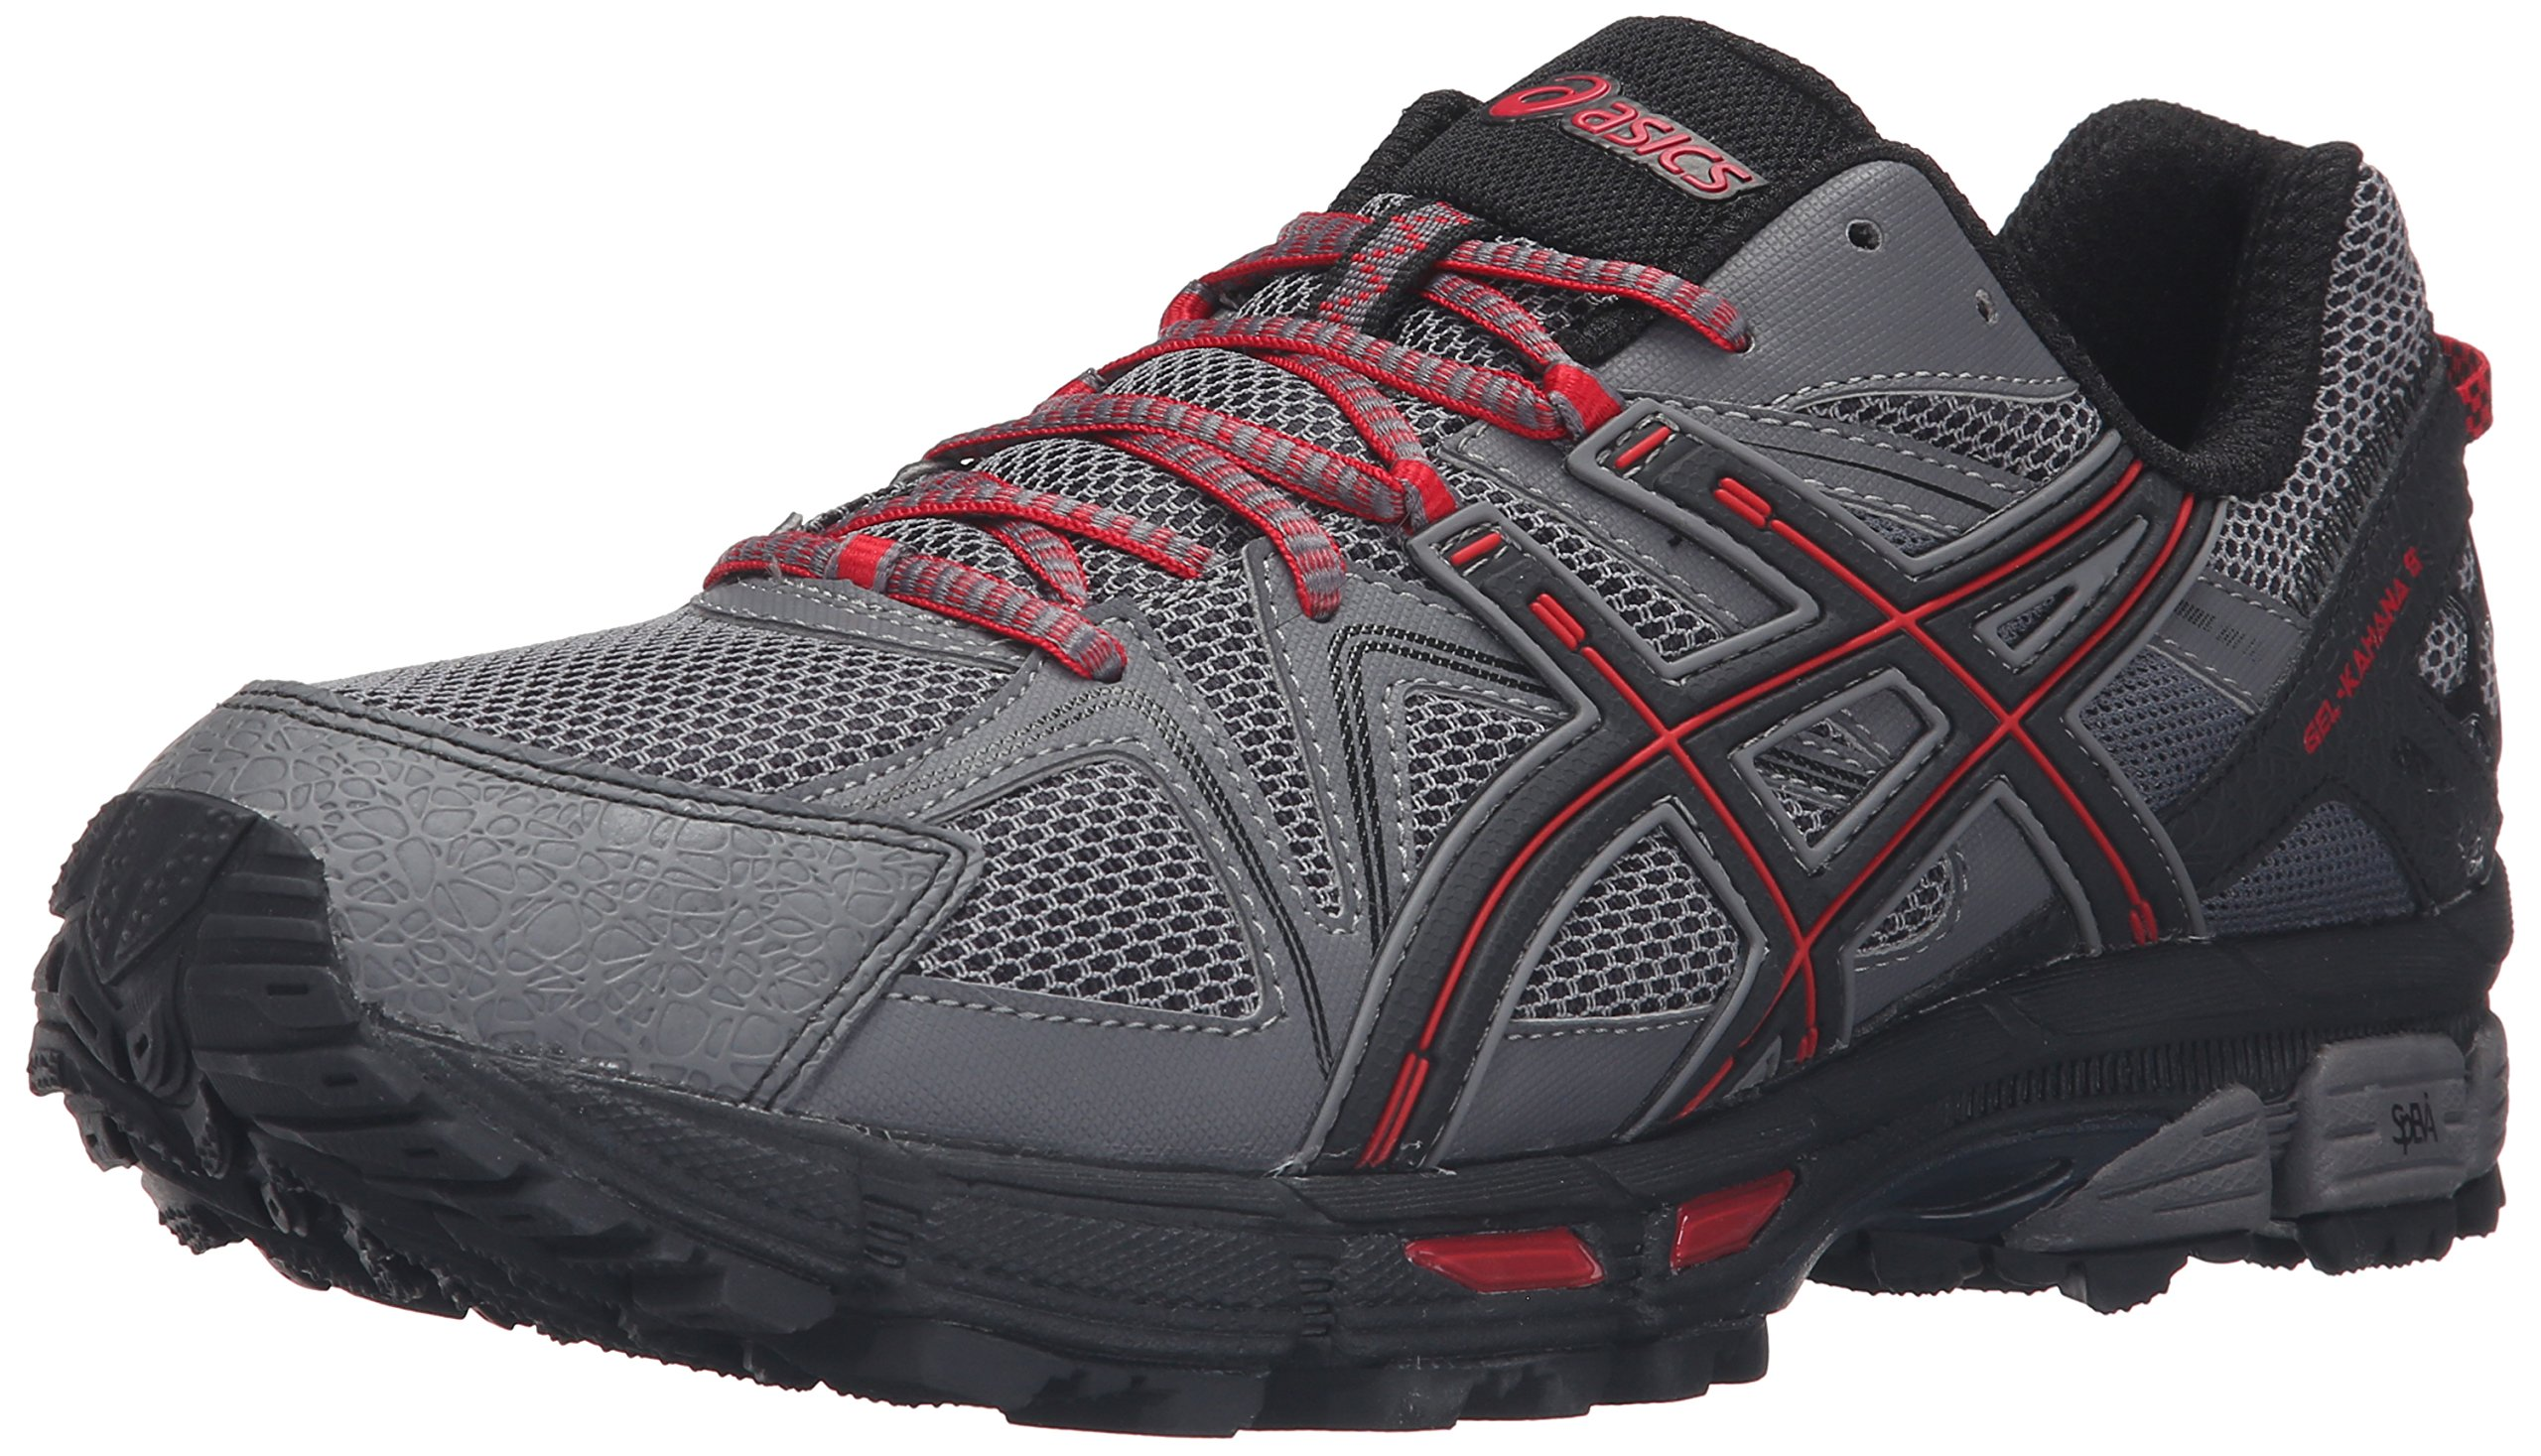 ASICS Men's Gel-Kahana 8 Trail Runner, Shark/Black/True Red, 8.5 M US by ASICS